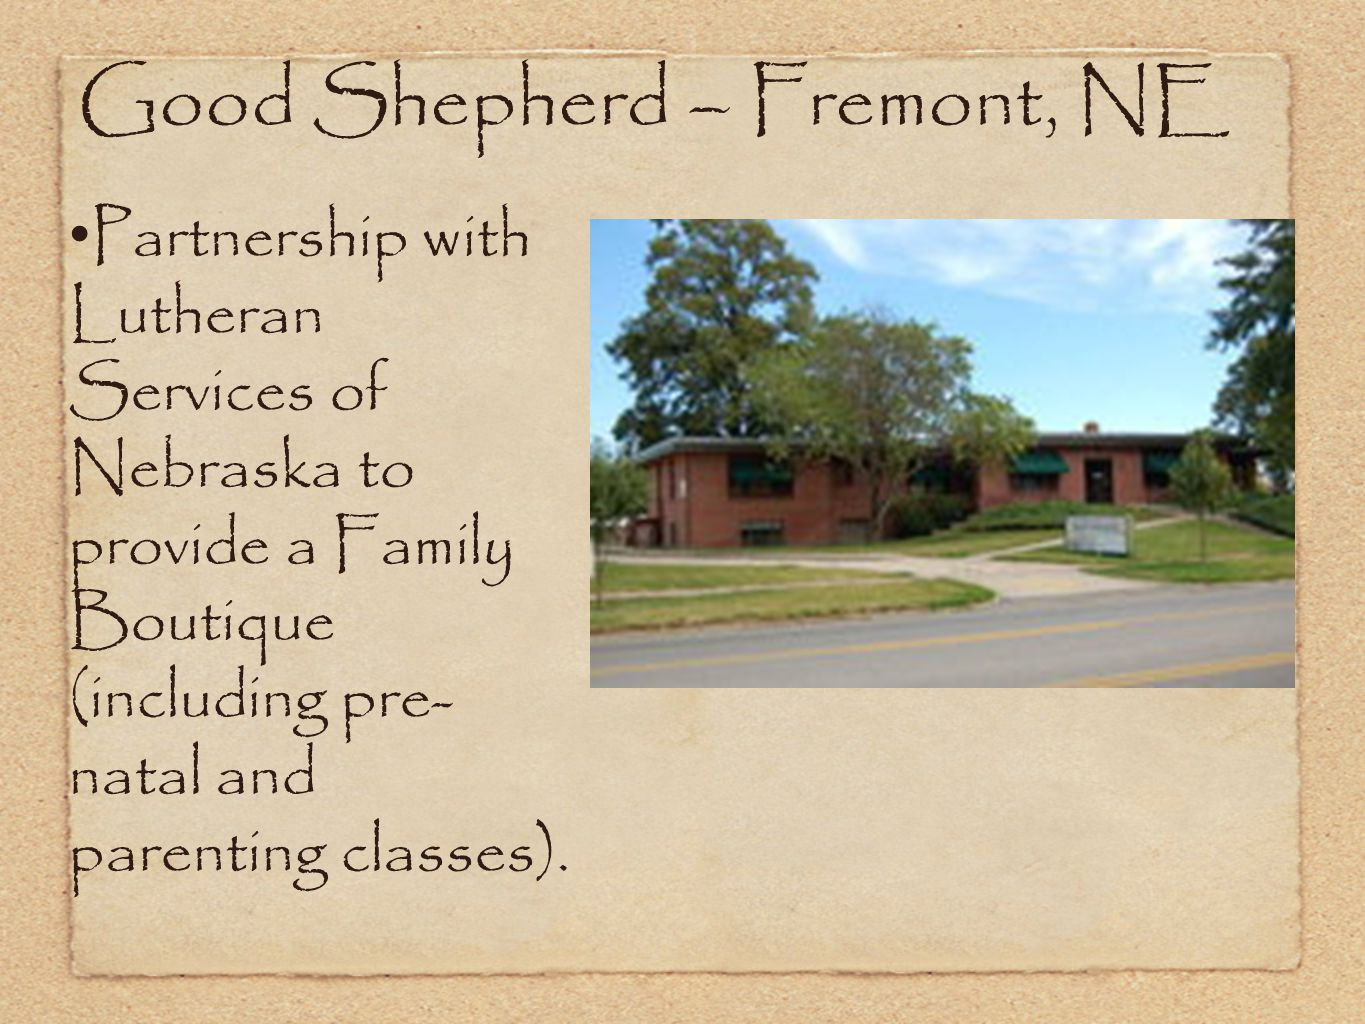 Good Shepherd – Fremont, NE Partnership with Lutheran Services of Nebraska to provide a Family Boutique (including pre- natal and parenting classes).